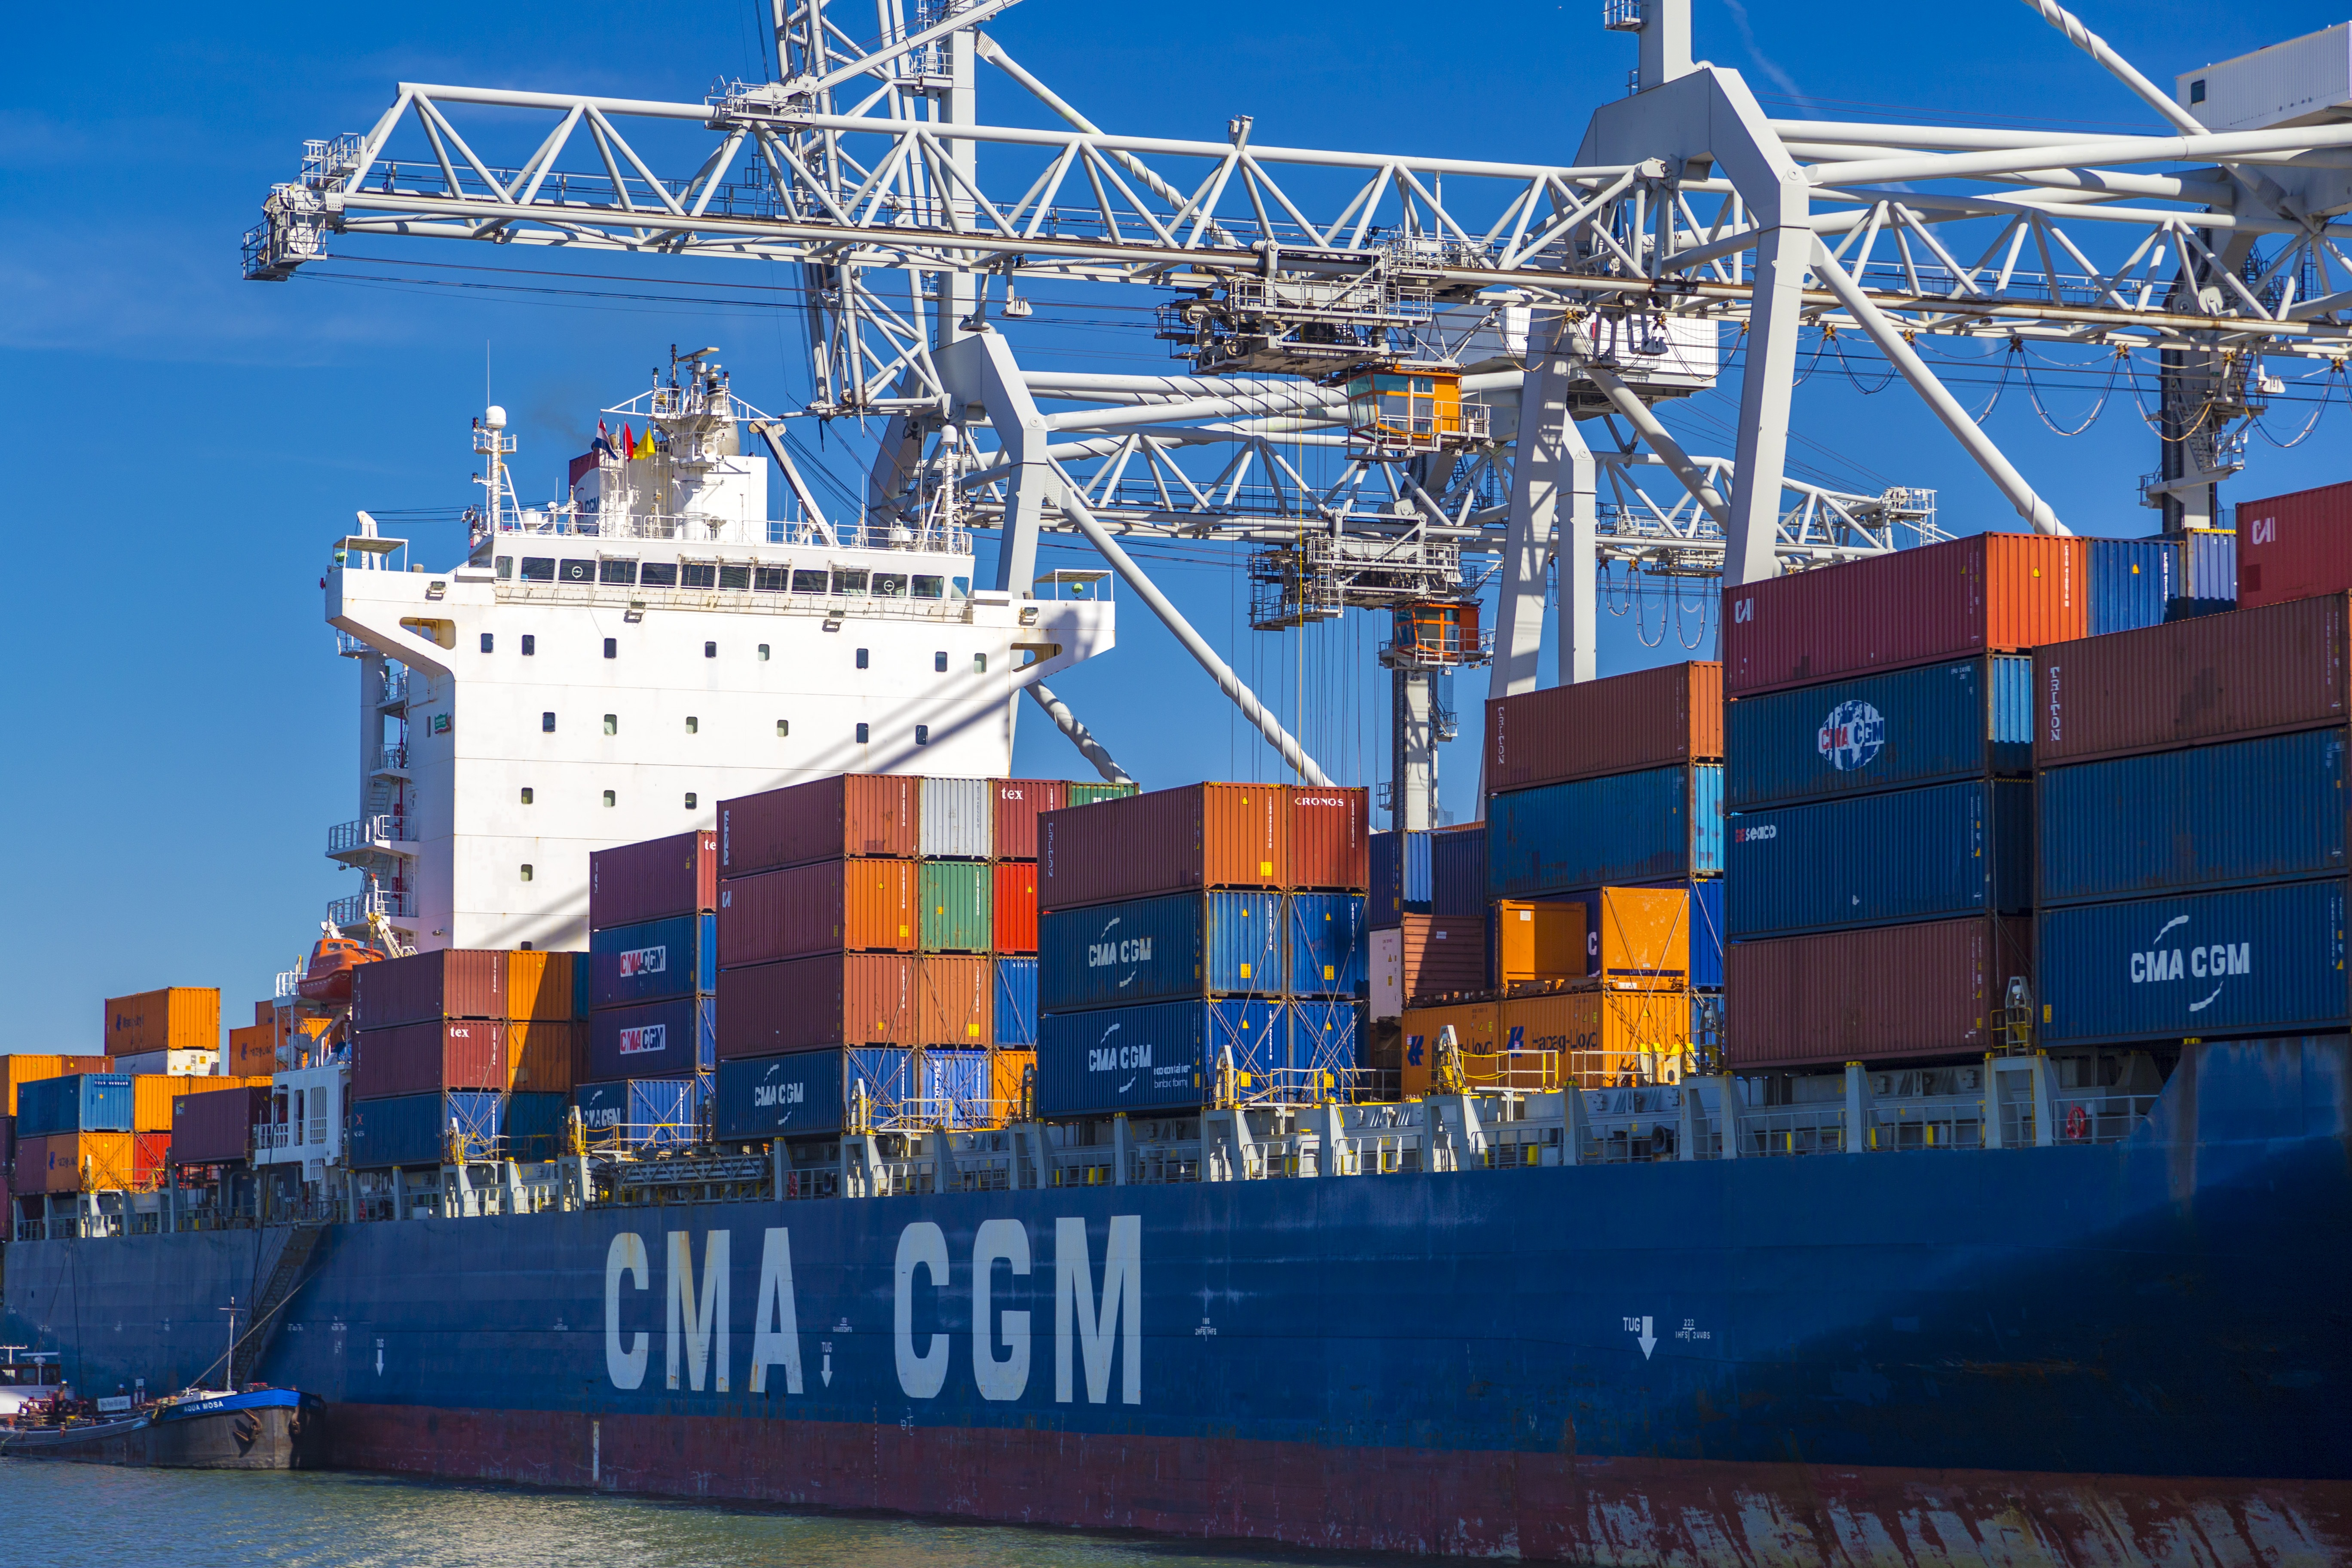 Rotterdam, Netherlands - May 24, 2015: Large CMA CGM container vessel unloaded in Port of Rotterdam, Netherlands